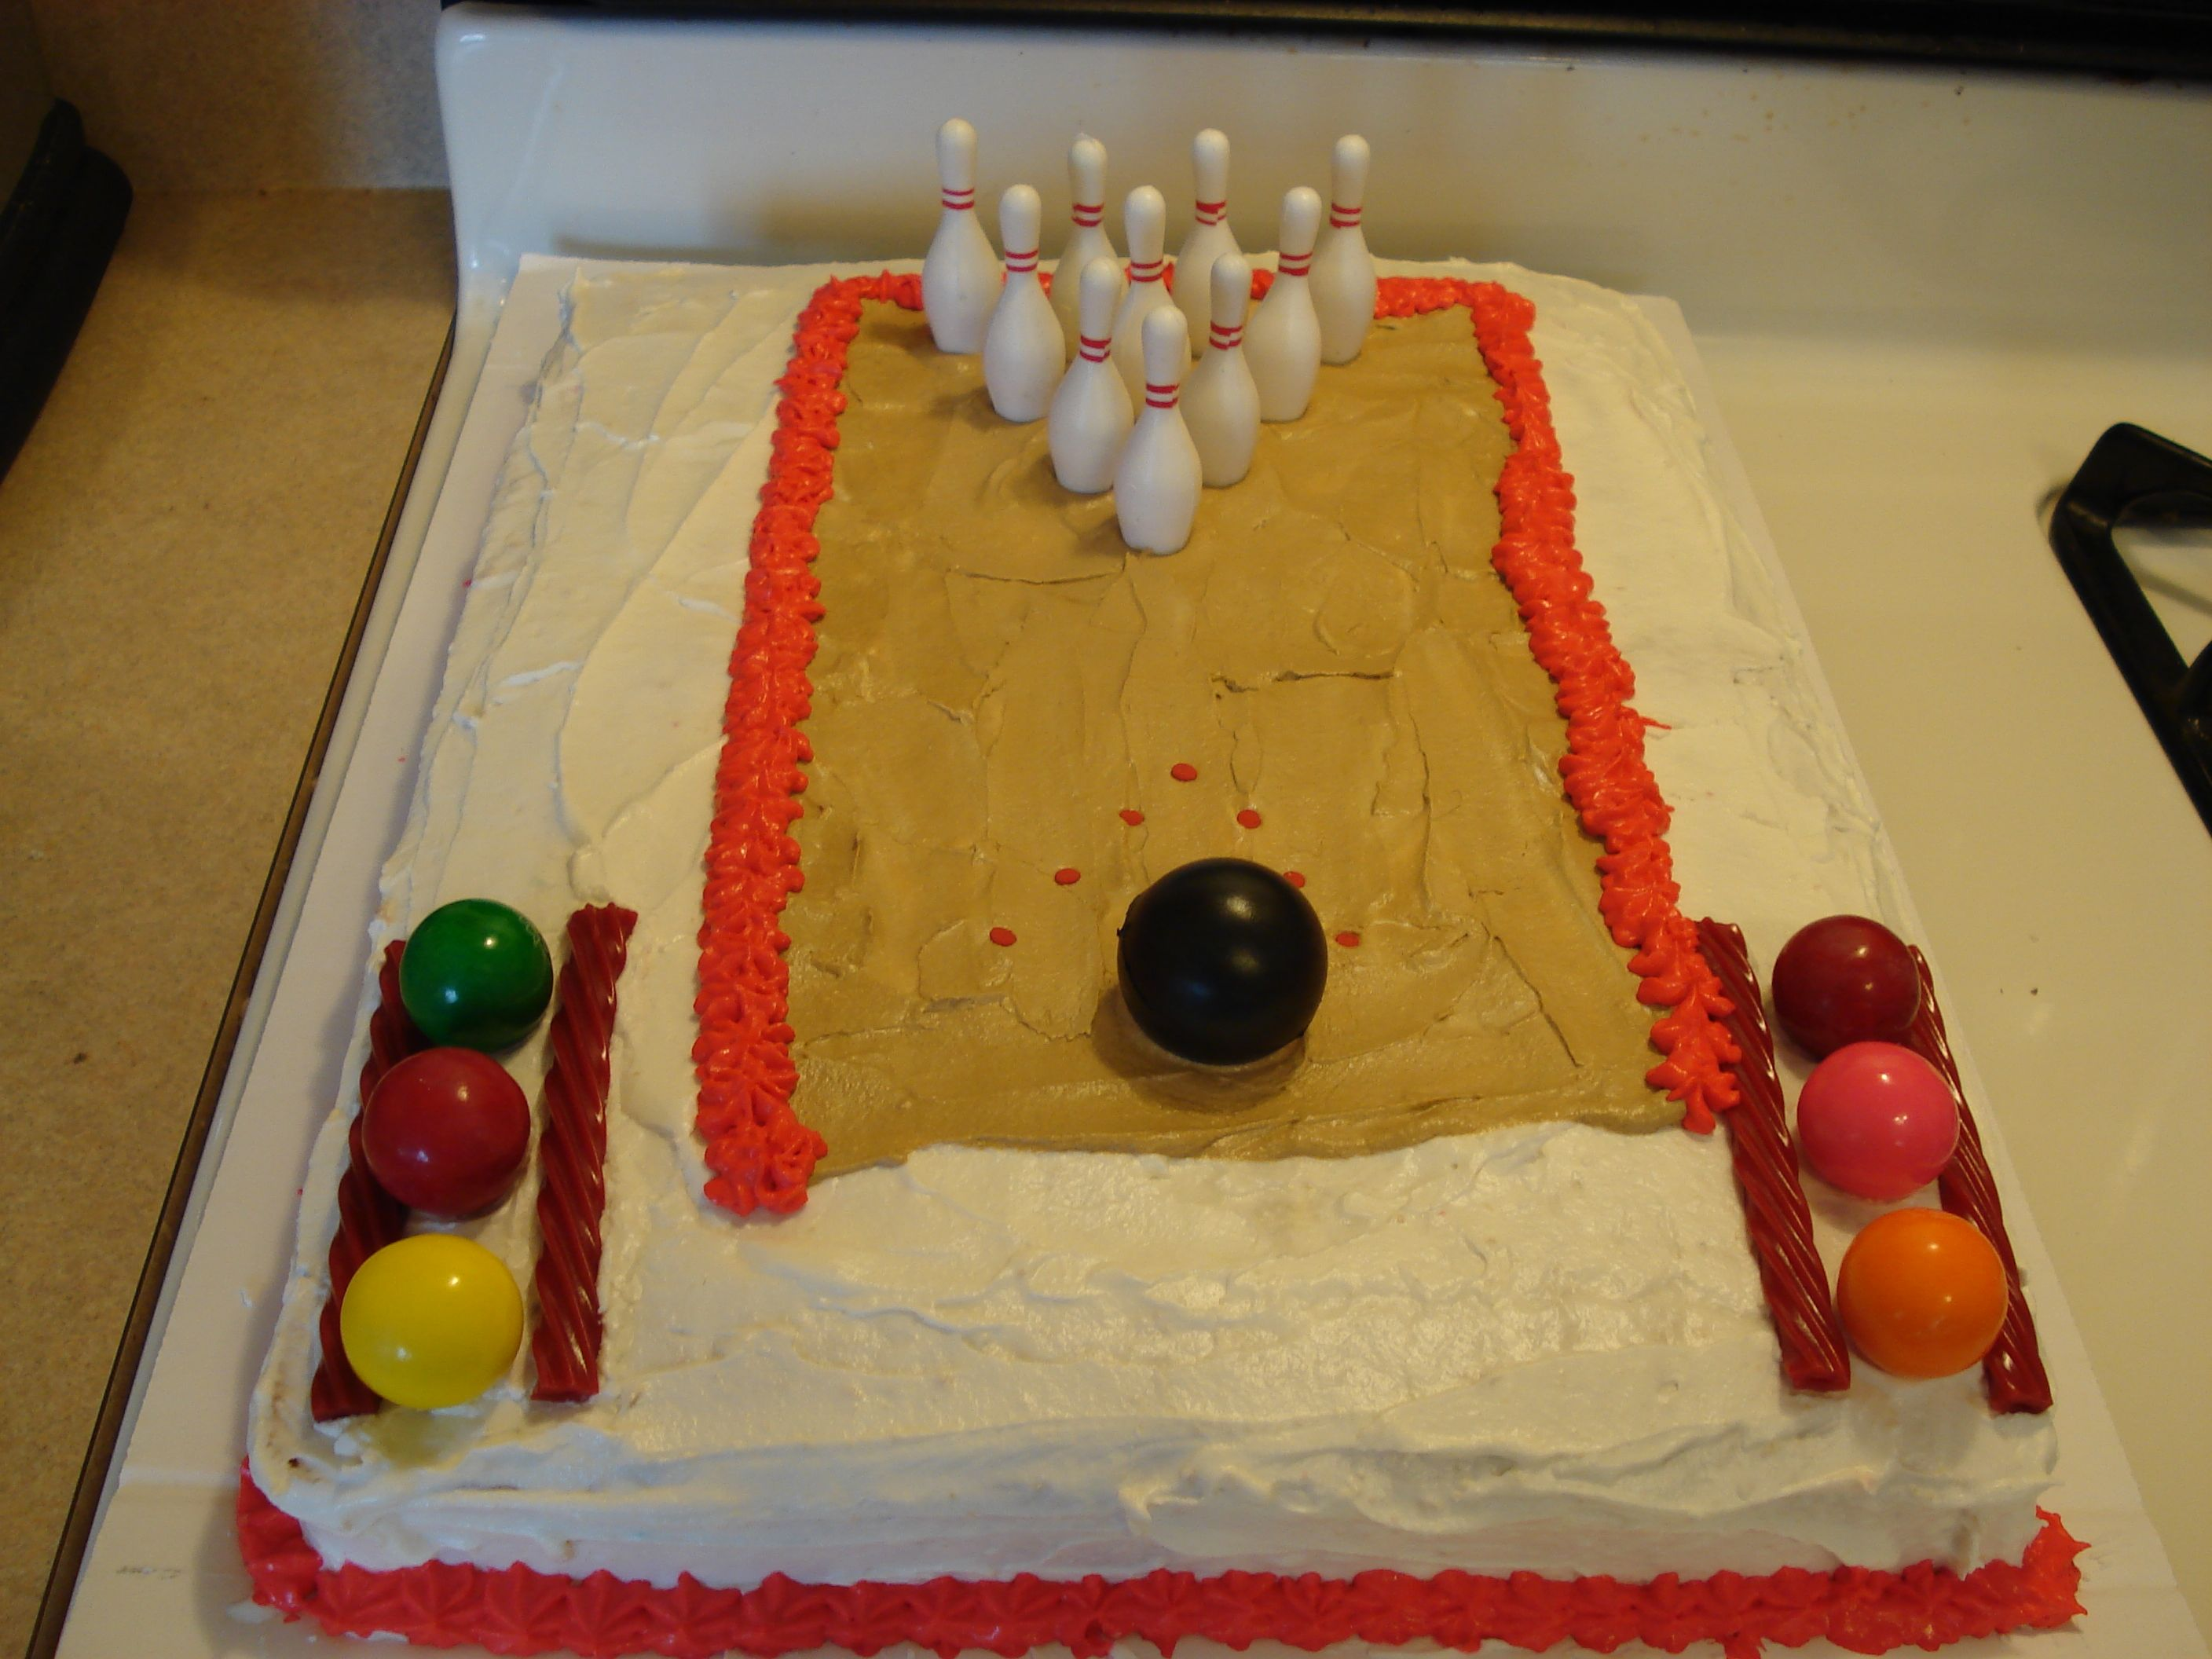 Bowling lane cake by me (Stefanie Belote)